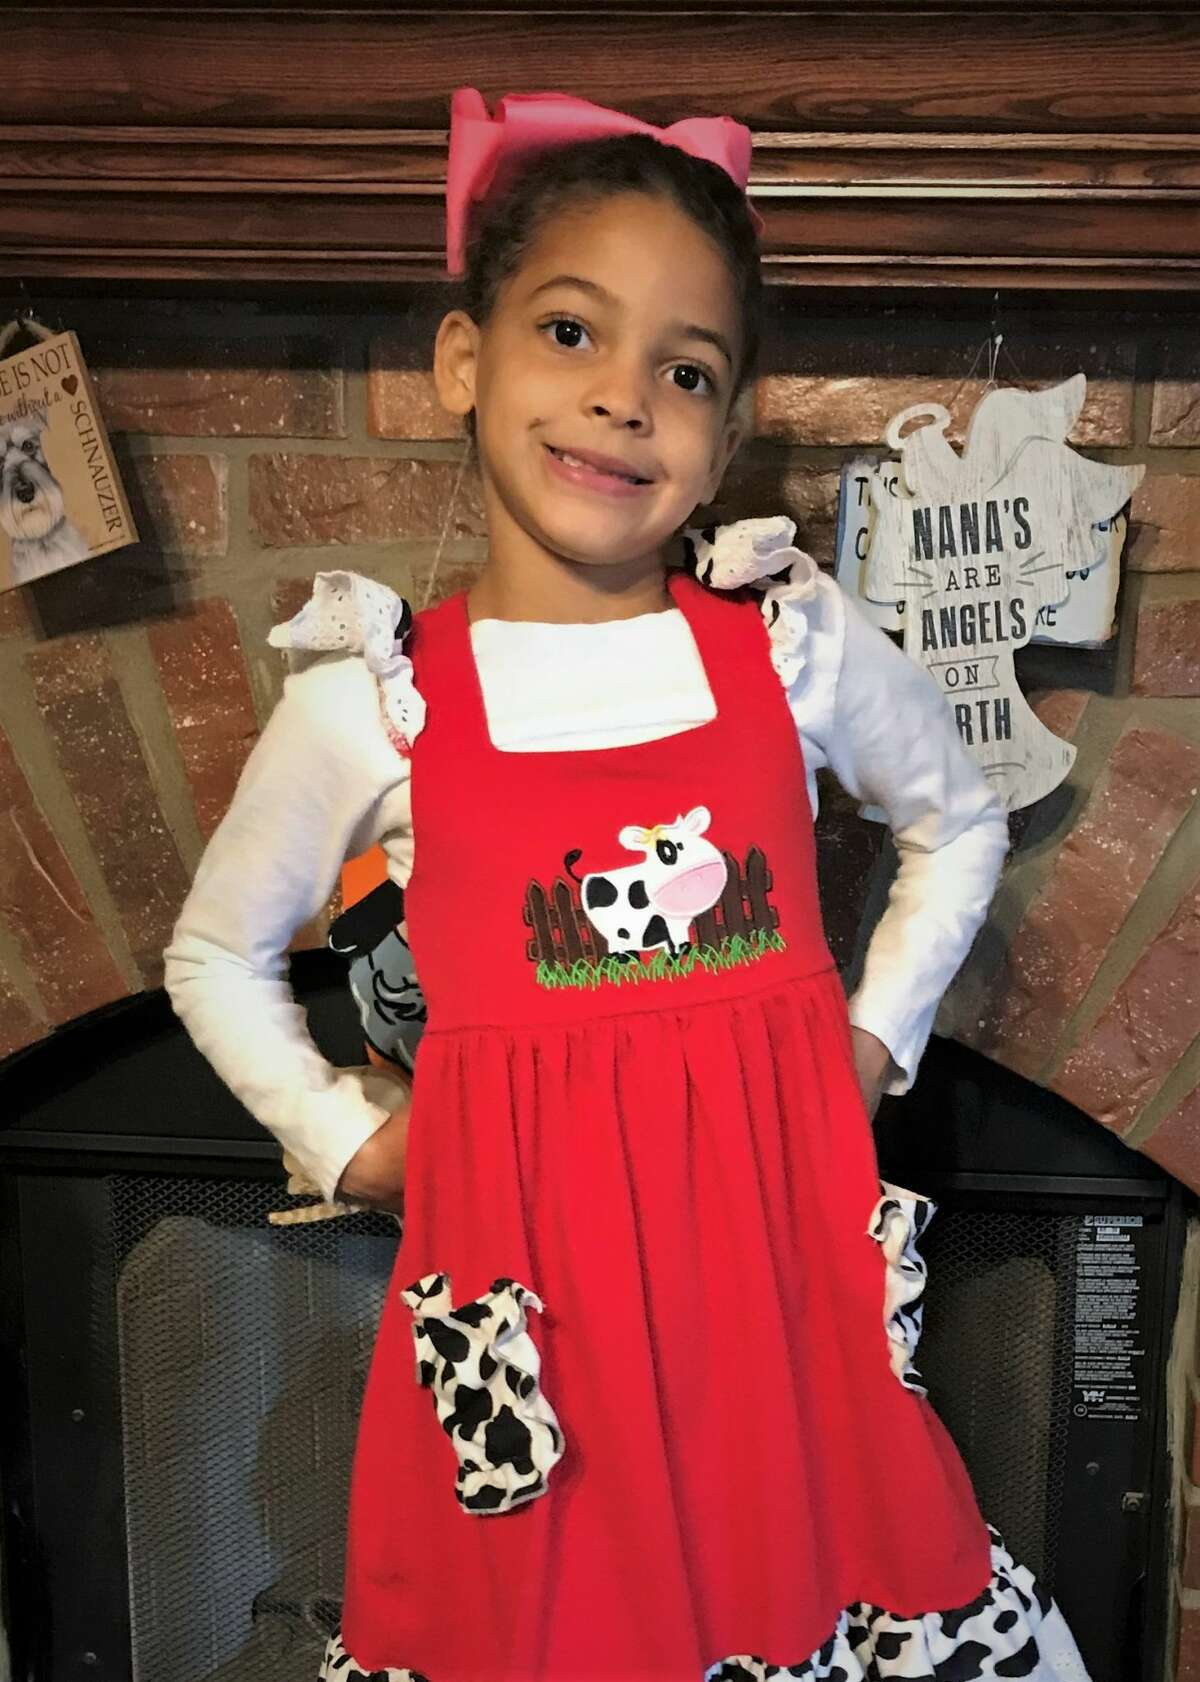 Seven-year-old Caylynn is an energetic, talkative, and loving child who is looking for her forever home.